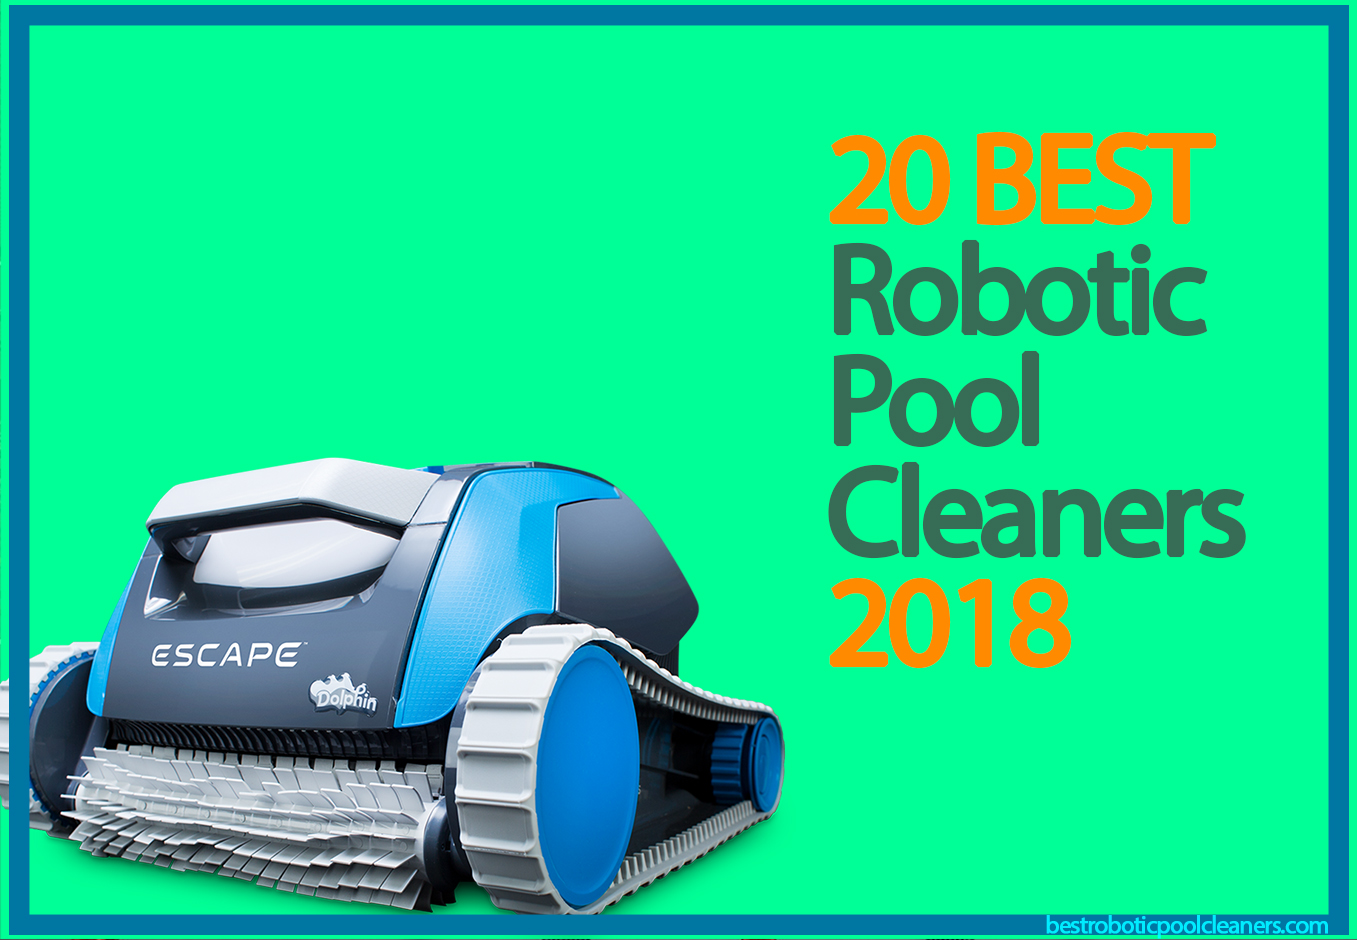 Zodiac Pool Care Europe 20 best robotic pool cleaners for 2018 - best robotic pool